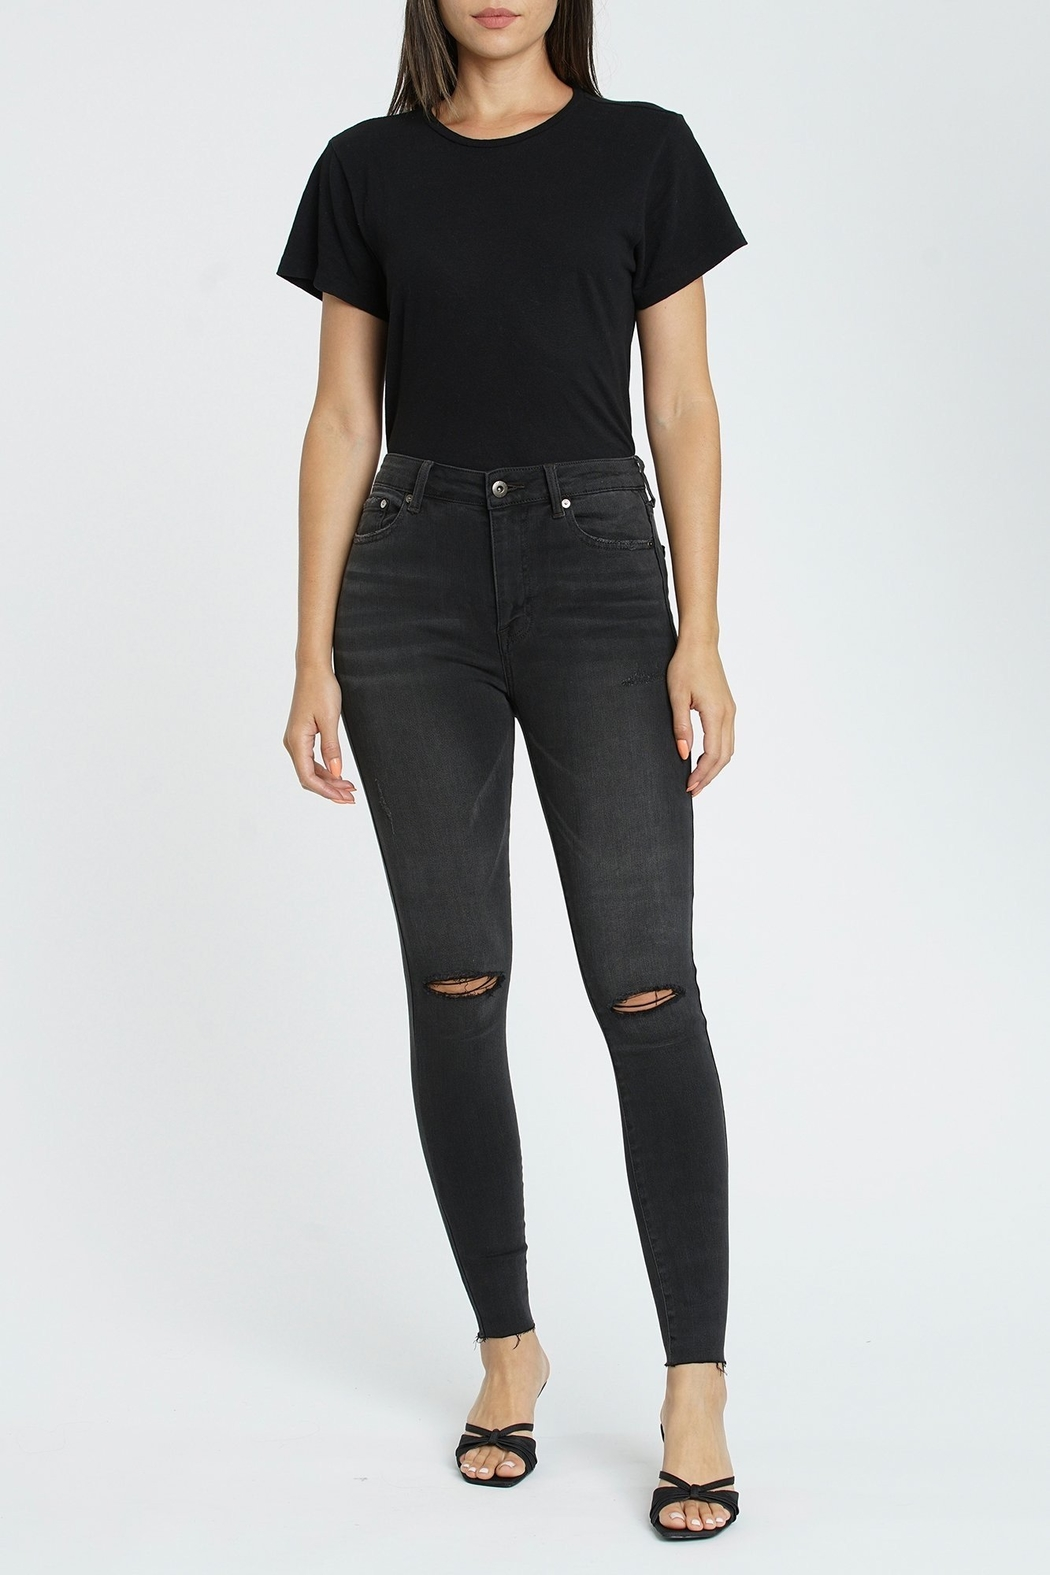 Pistola Aline Skinny Jean in Mustang - Front Cropped Image